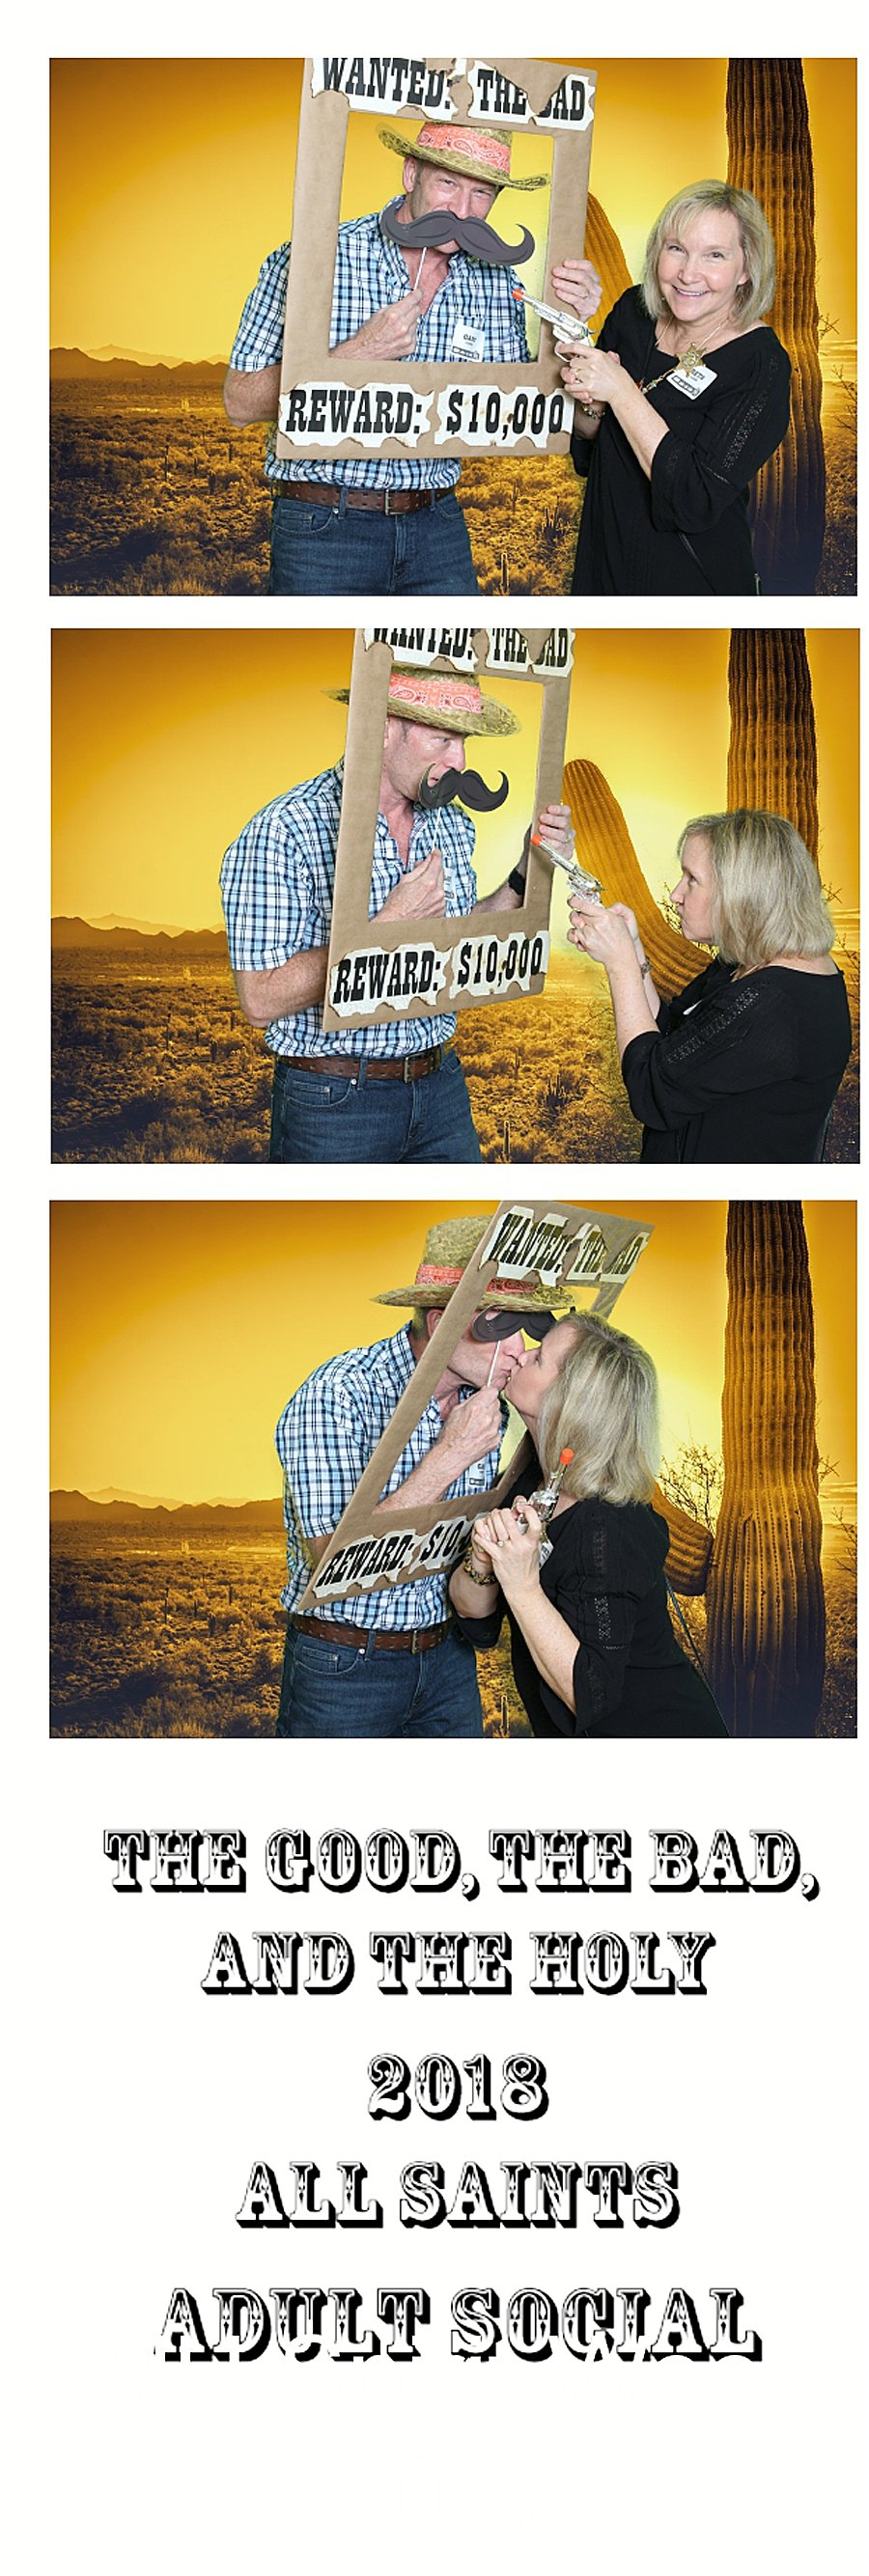 Knoxville Photo Booth_1320.jpg